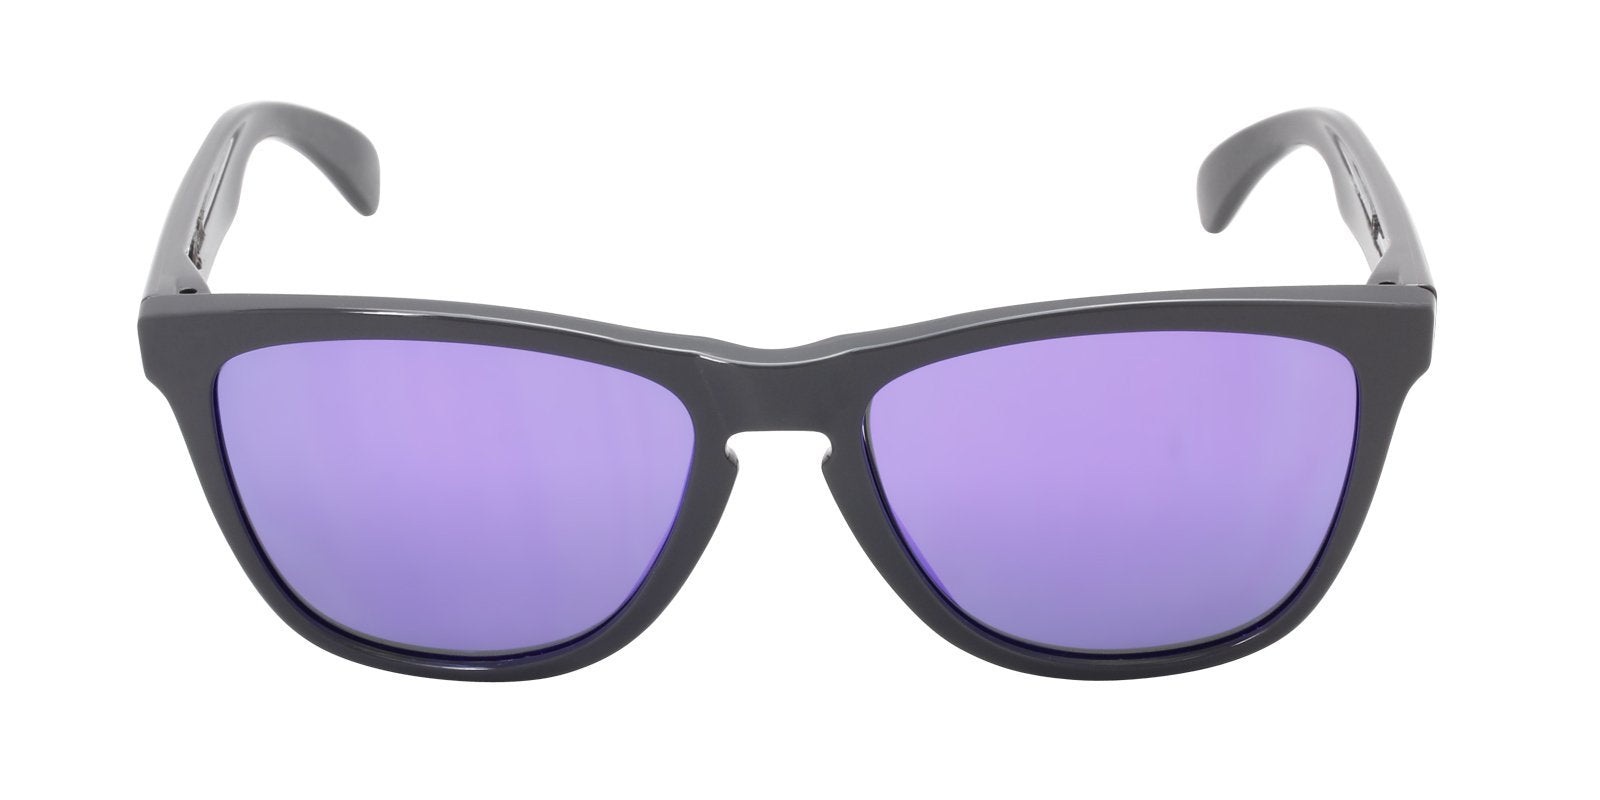 Oakley - Frogskins Gray/Purple Rectangular Women Sunglasses - 55mm-Sunglasses-Designer Eyes